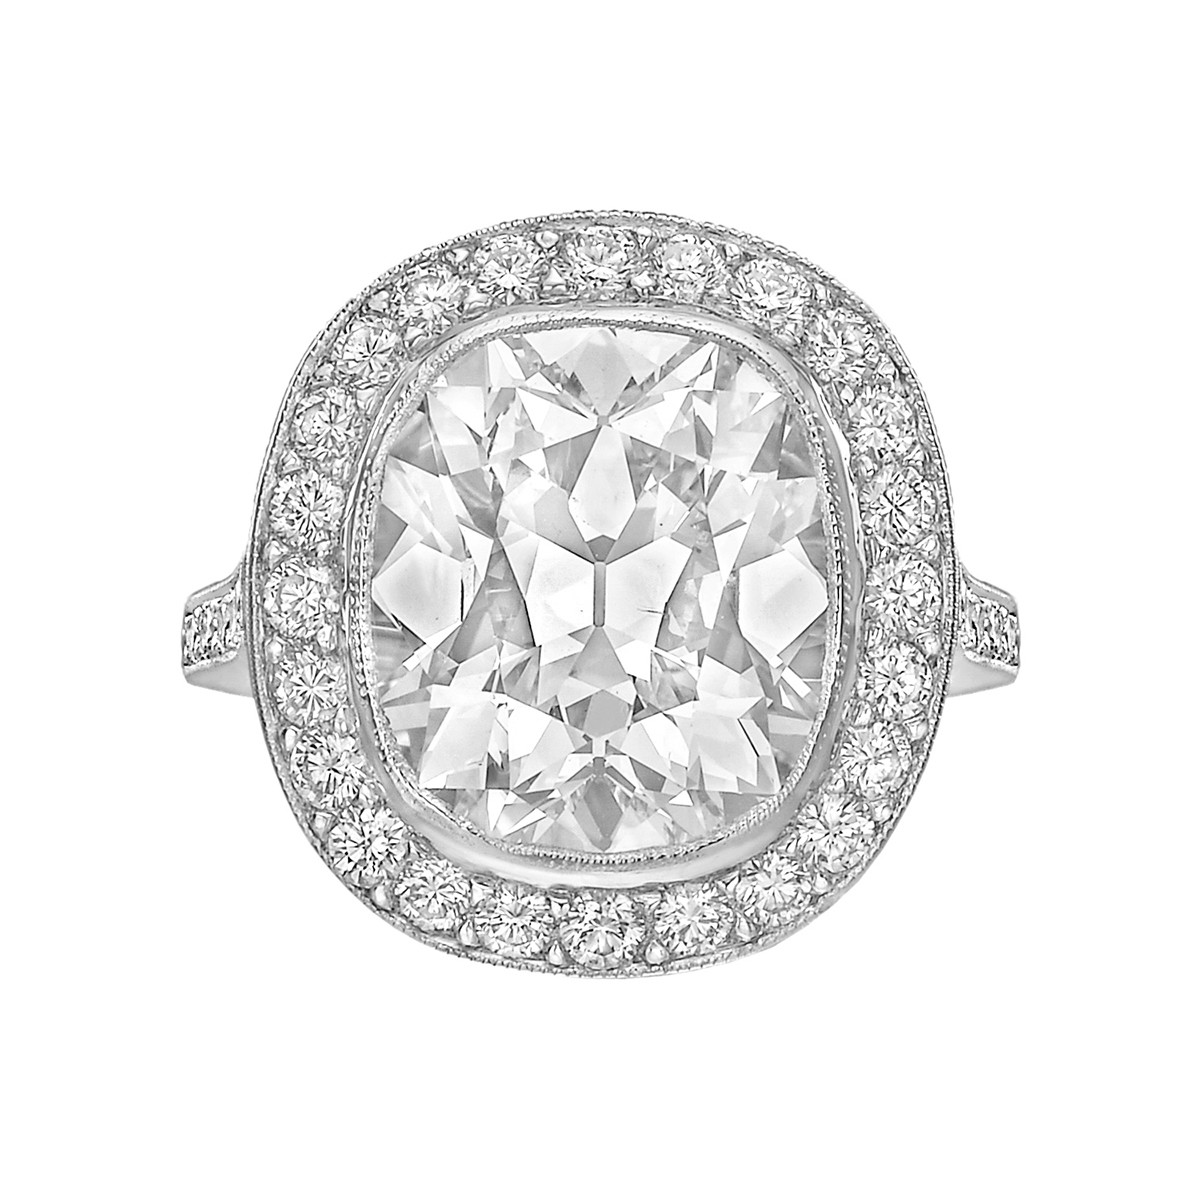 6.61ct Fine Colorless Cushion-Cut Diamond Ring